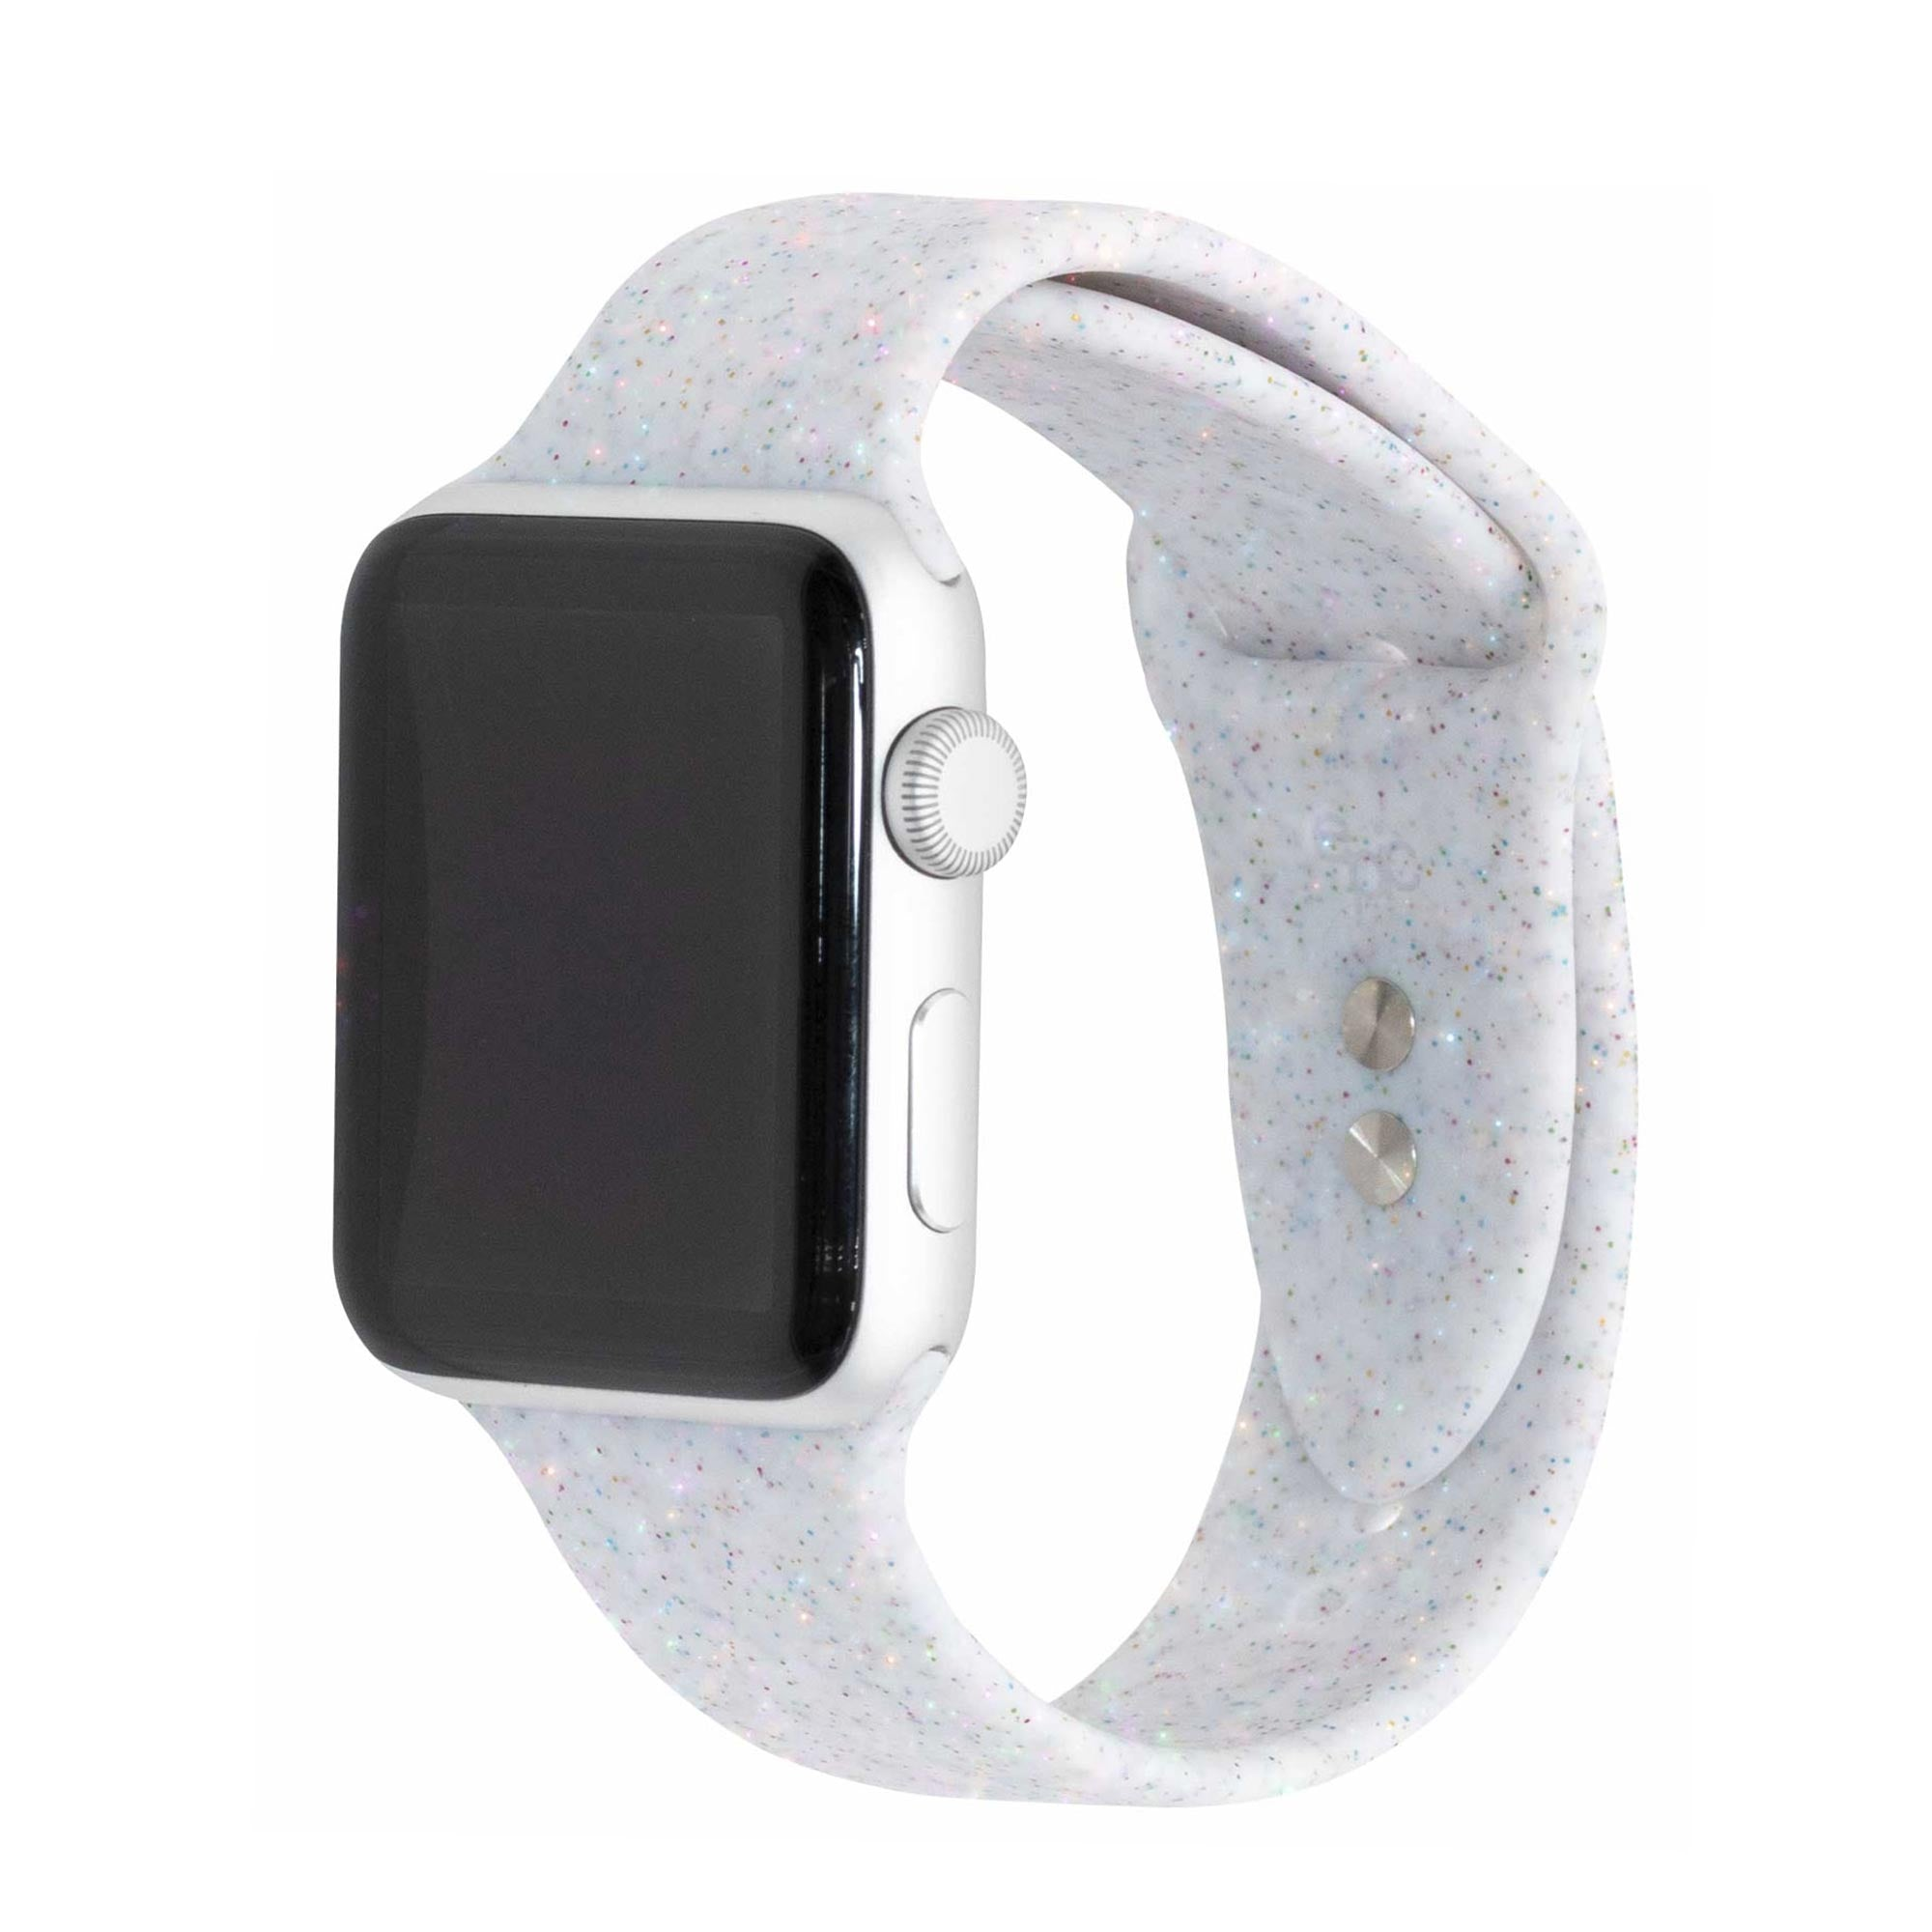 Shimmer Moonstone Specialty Silicone Apple Watch Bands | Epic Watch Bands